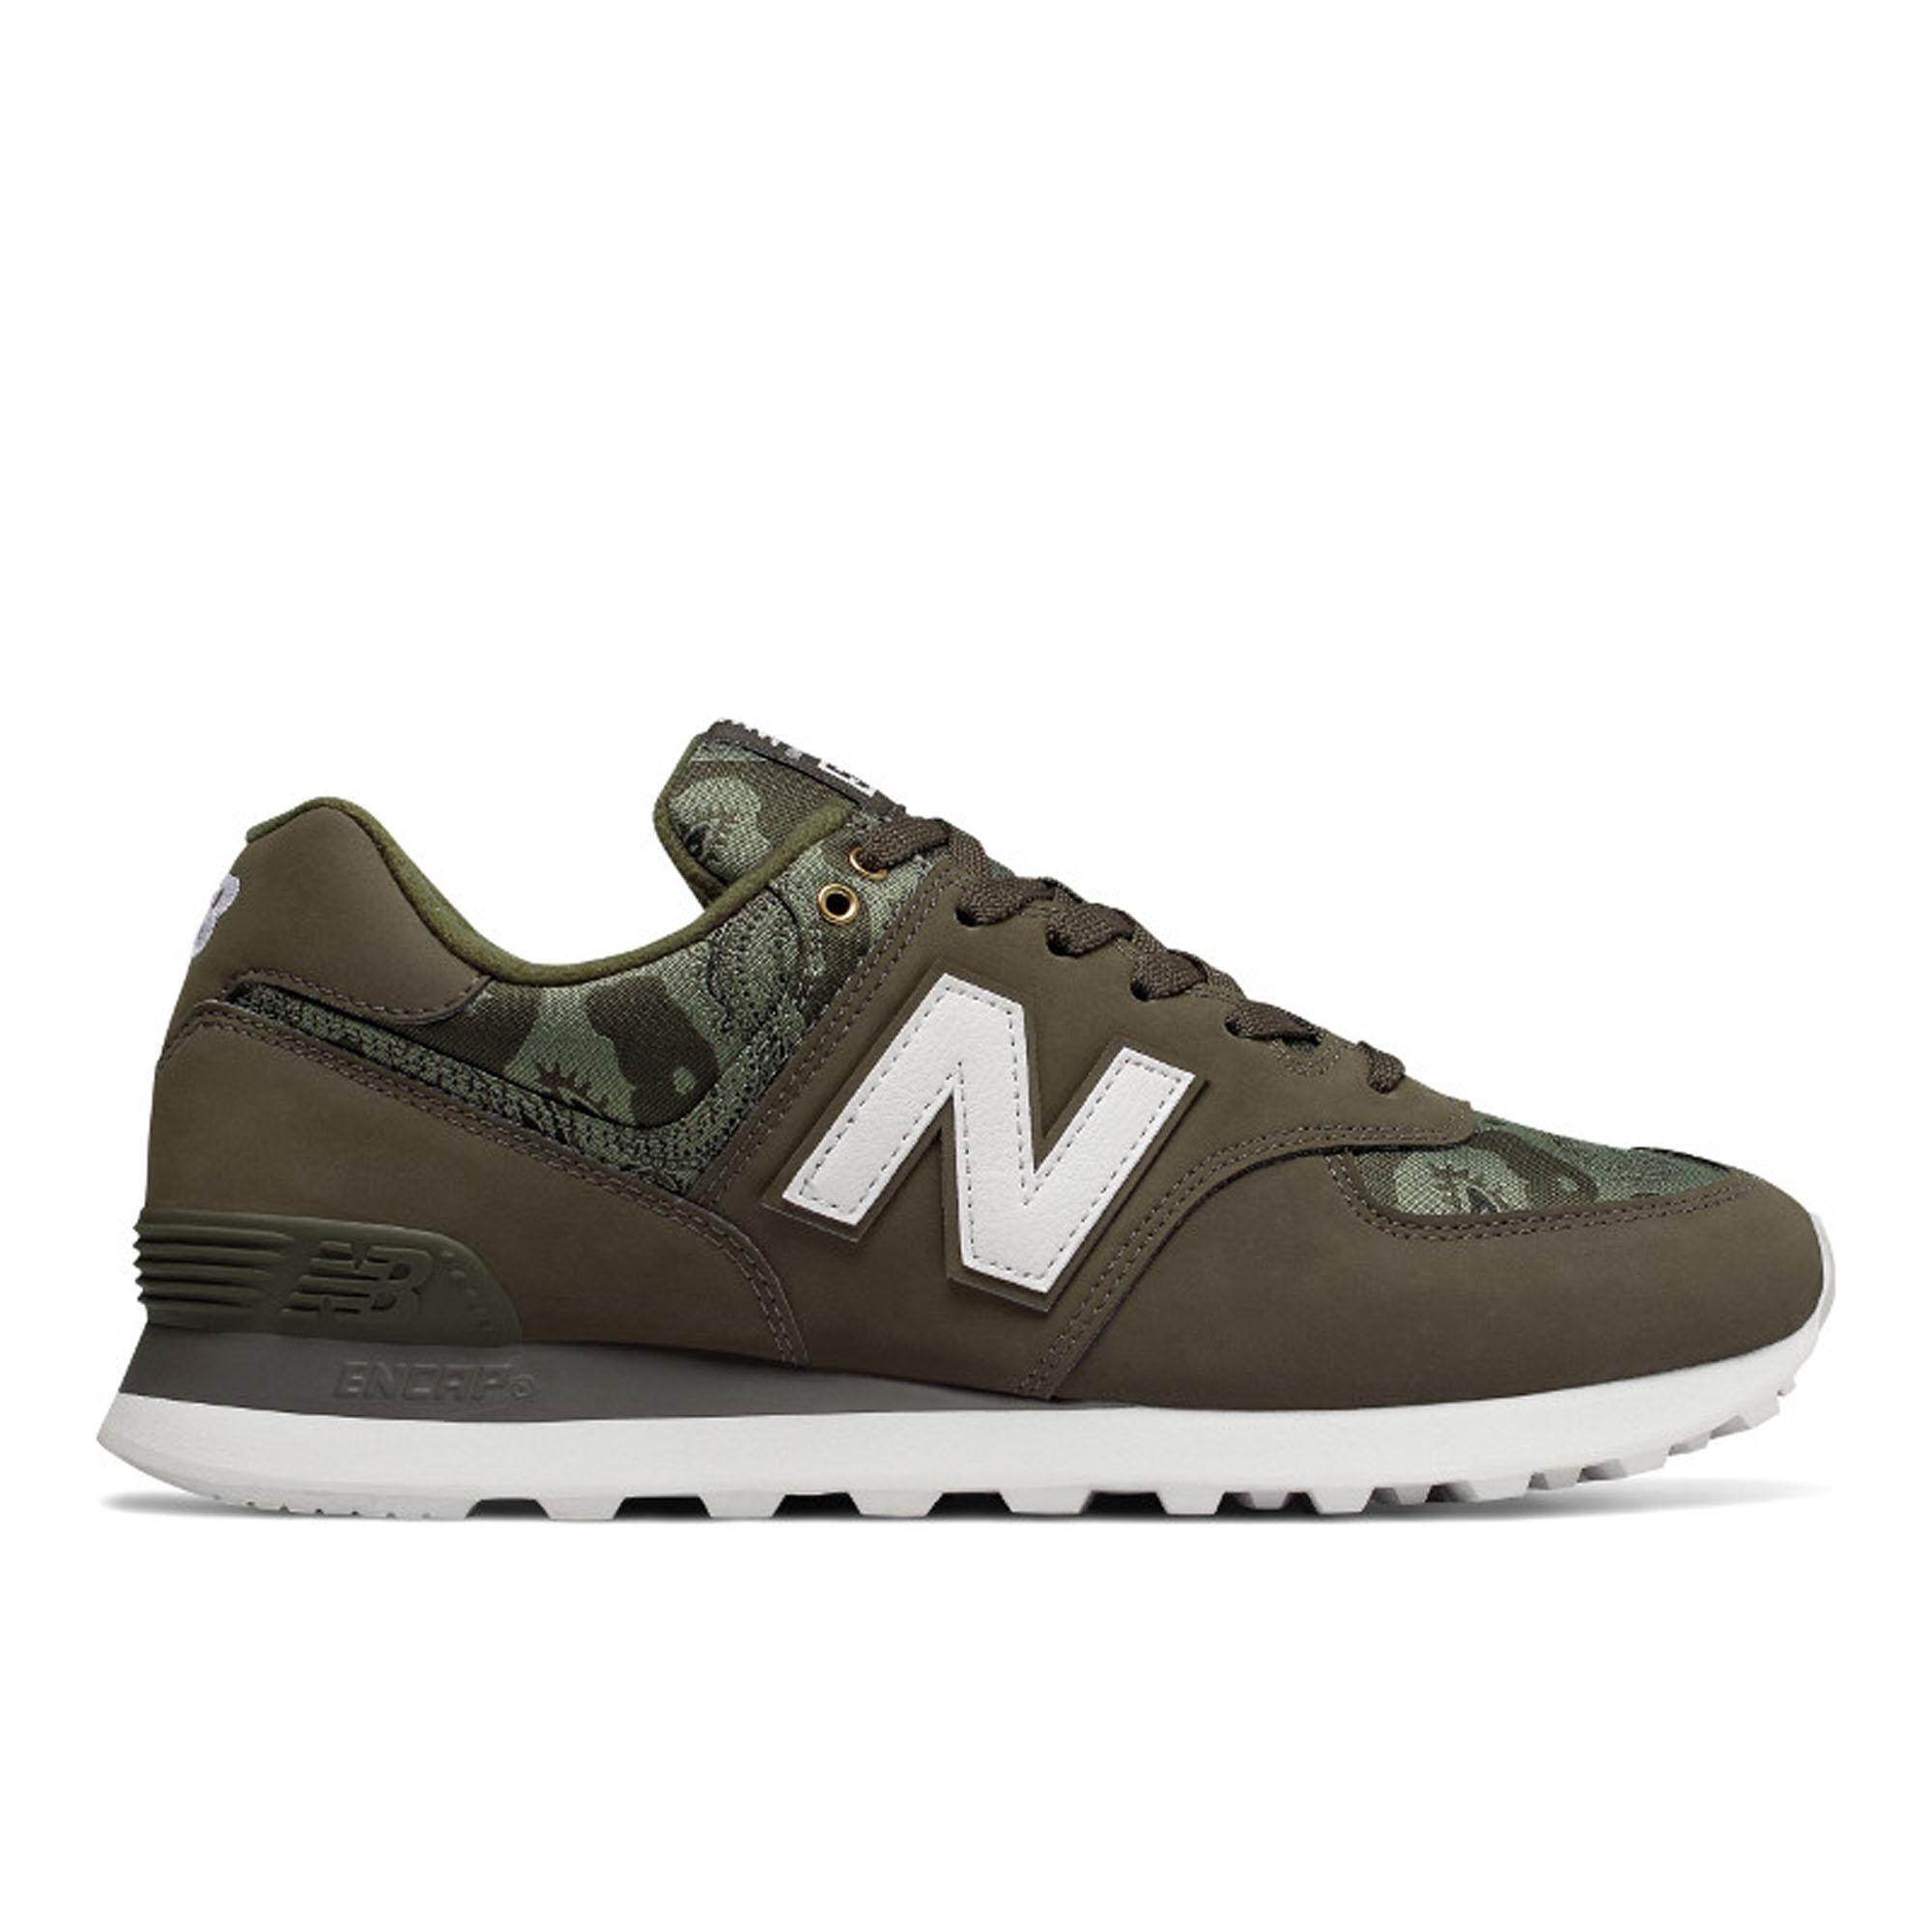 a2eedb78d1f80 New Balance Men's Lifestyle Shoes - 574 (Camouflage)